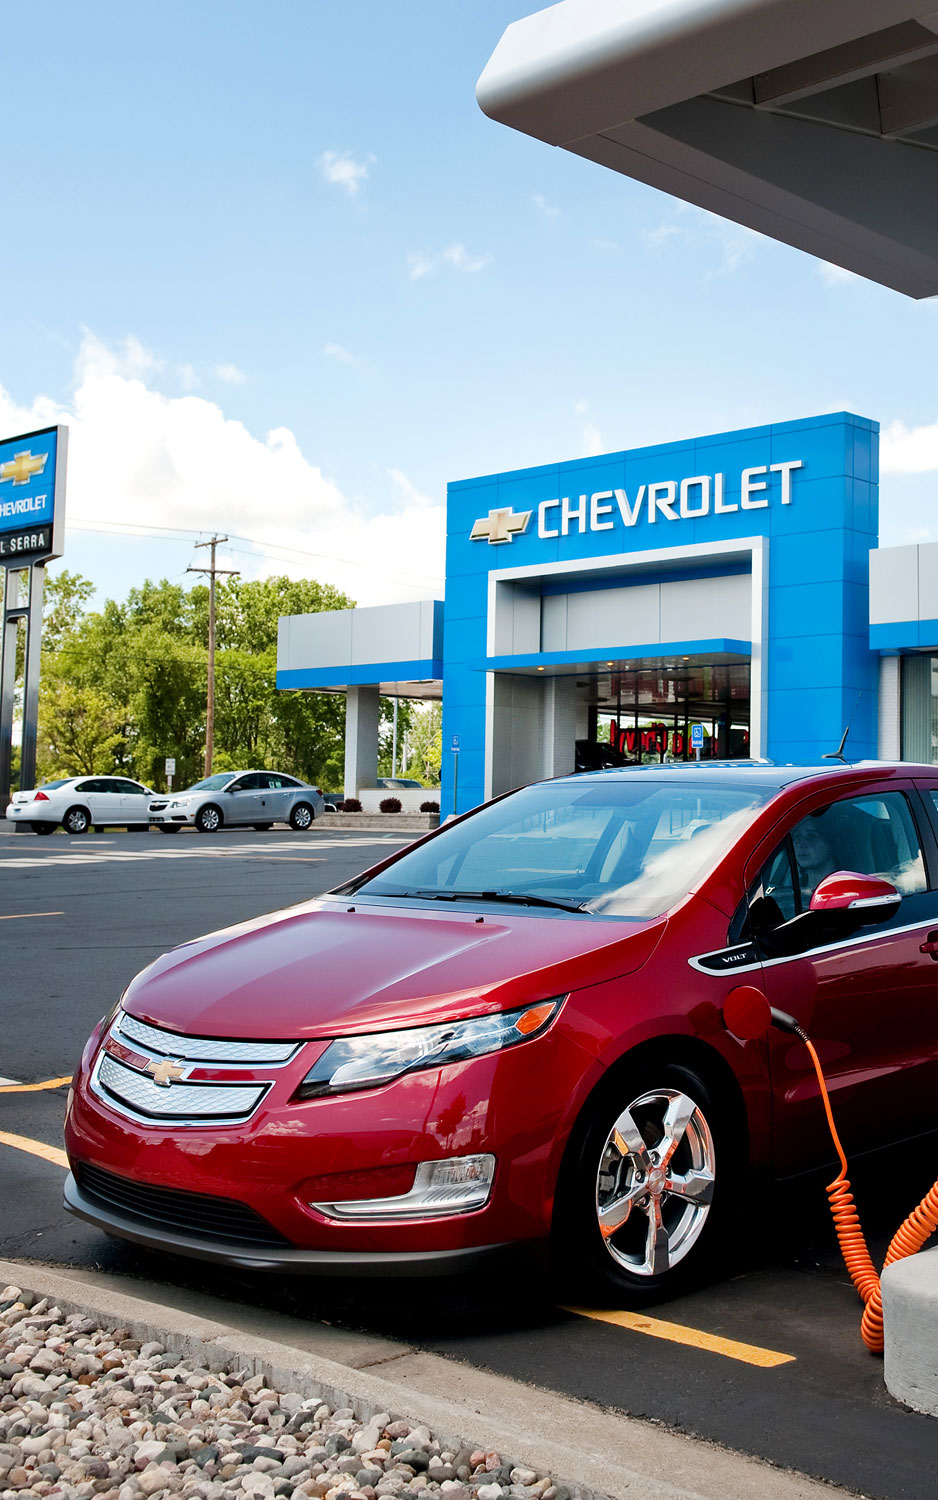 Chevrolet Volt Dealers Install Solar Panels To Help Charging